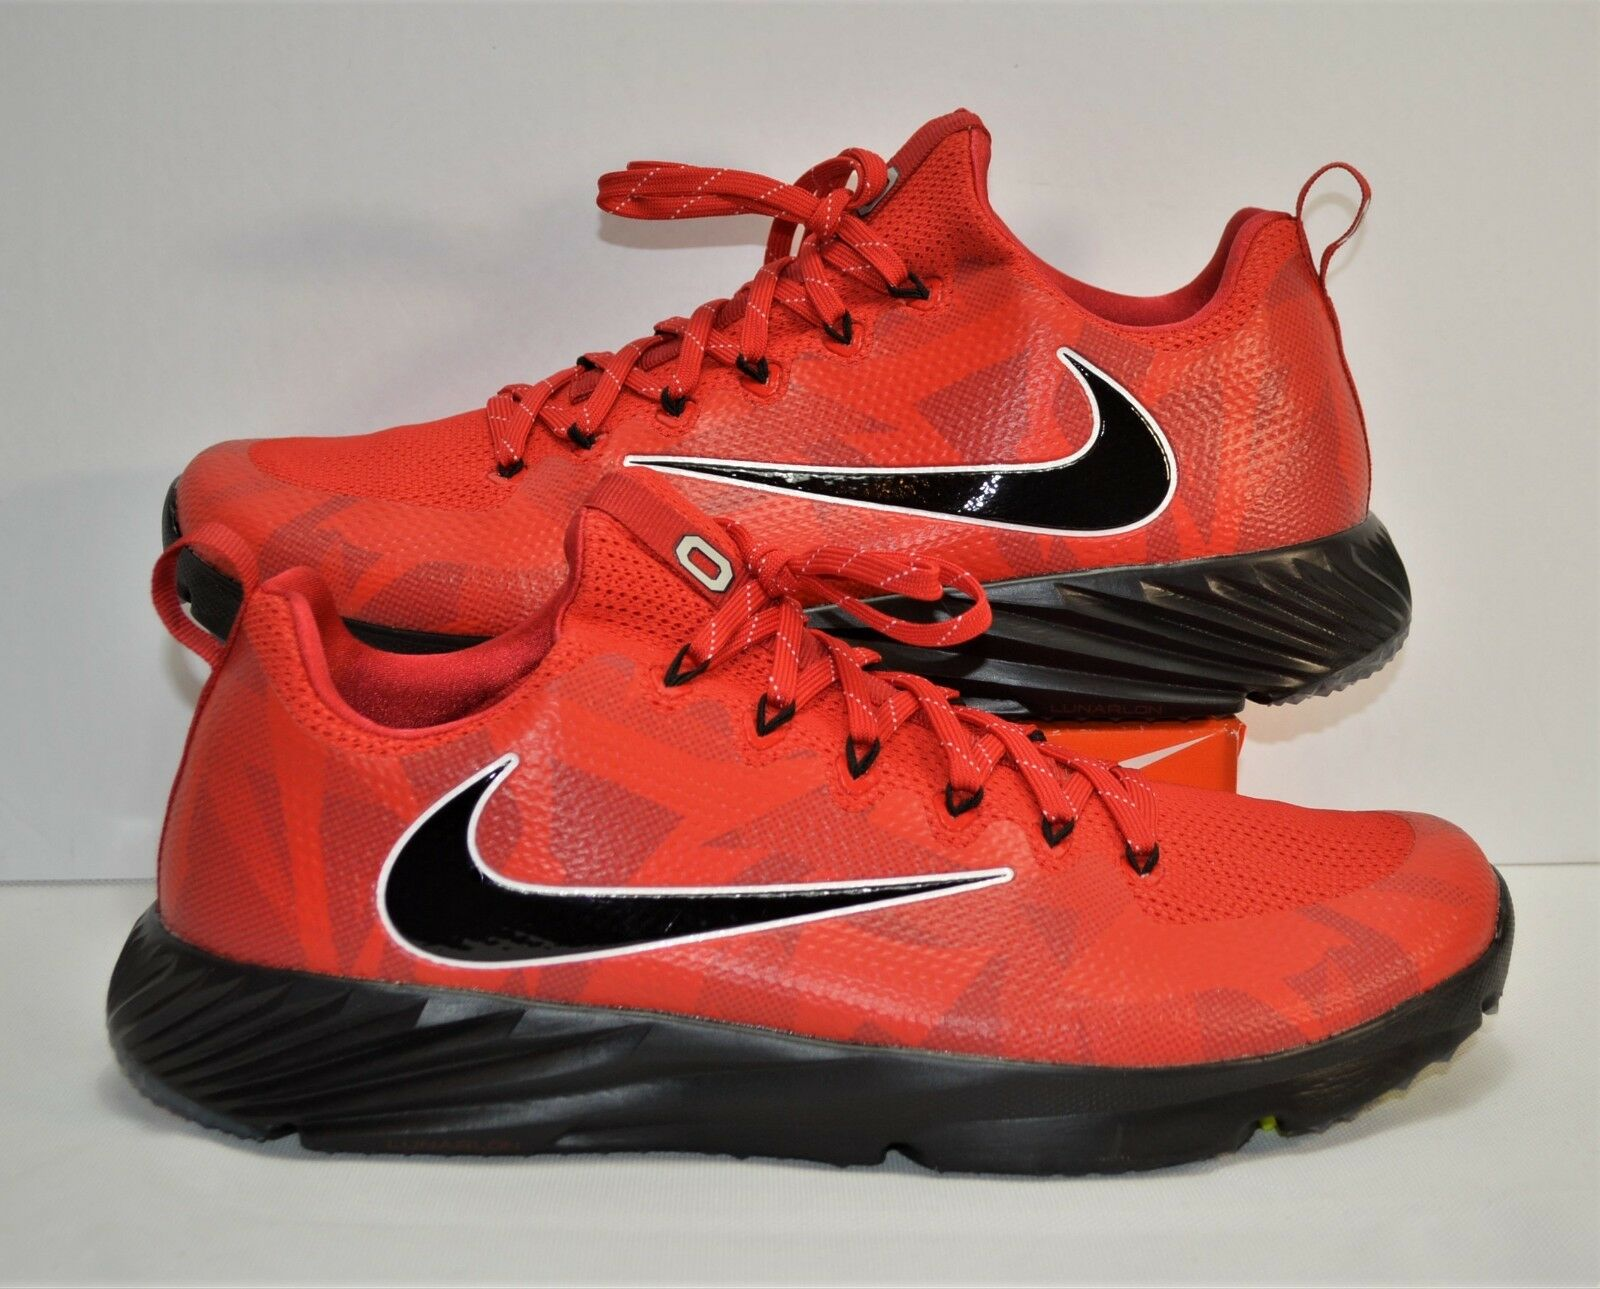 Nike Vapor Speed Turf Ohio State Buckeyes Trainer shoes Sz 12.5 NEW 924776 601